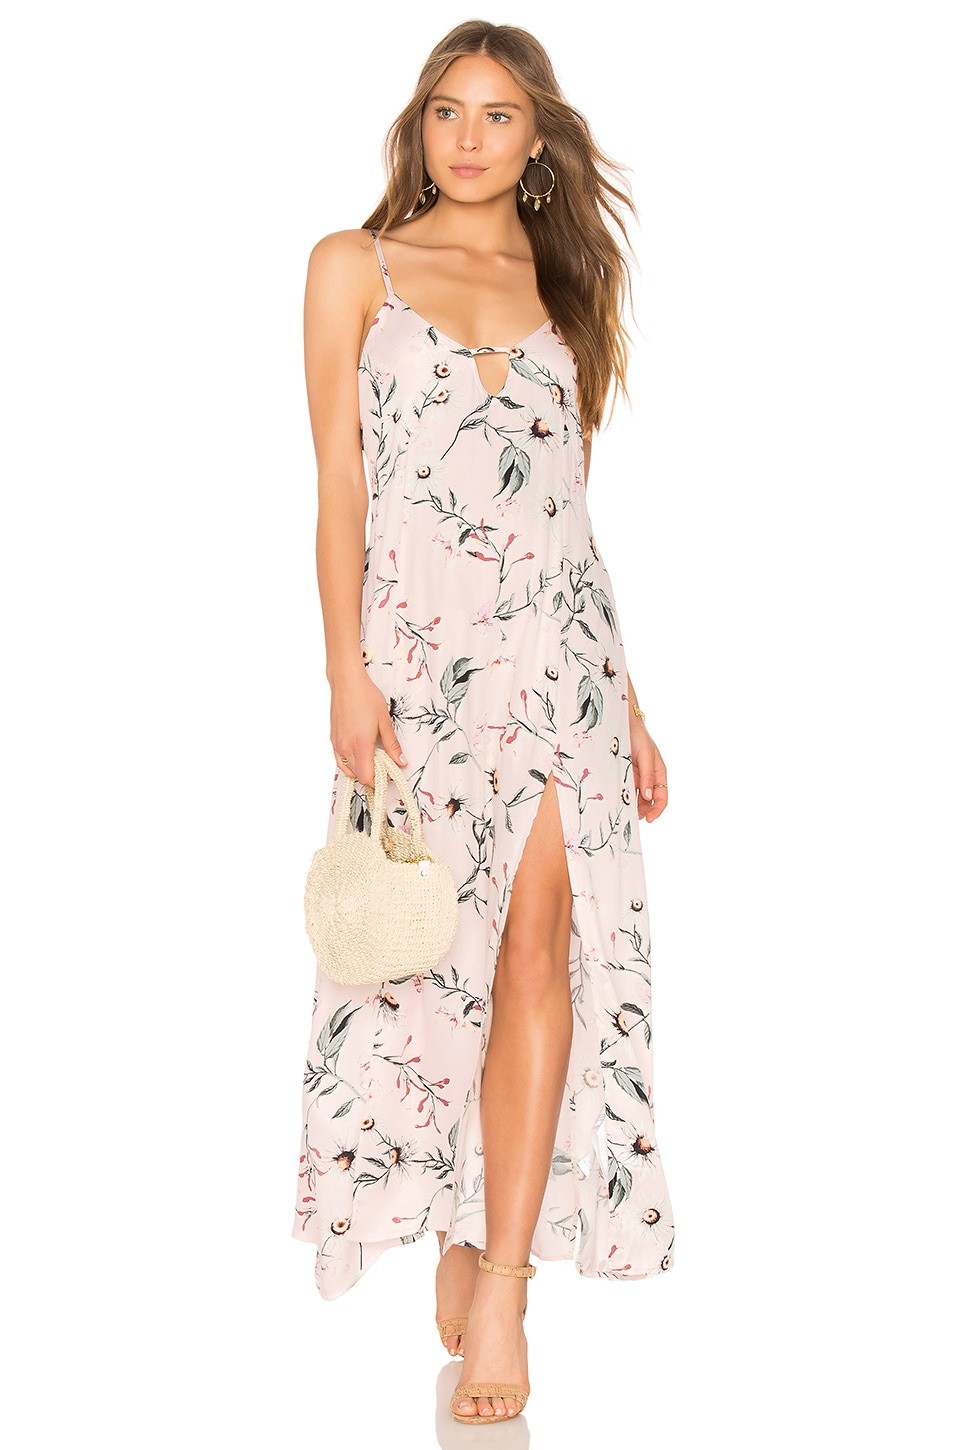 LOVERS SOAR MIDI DRESS